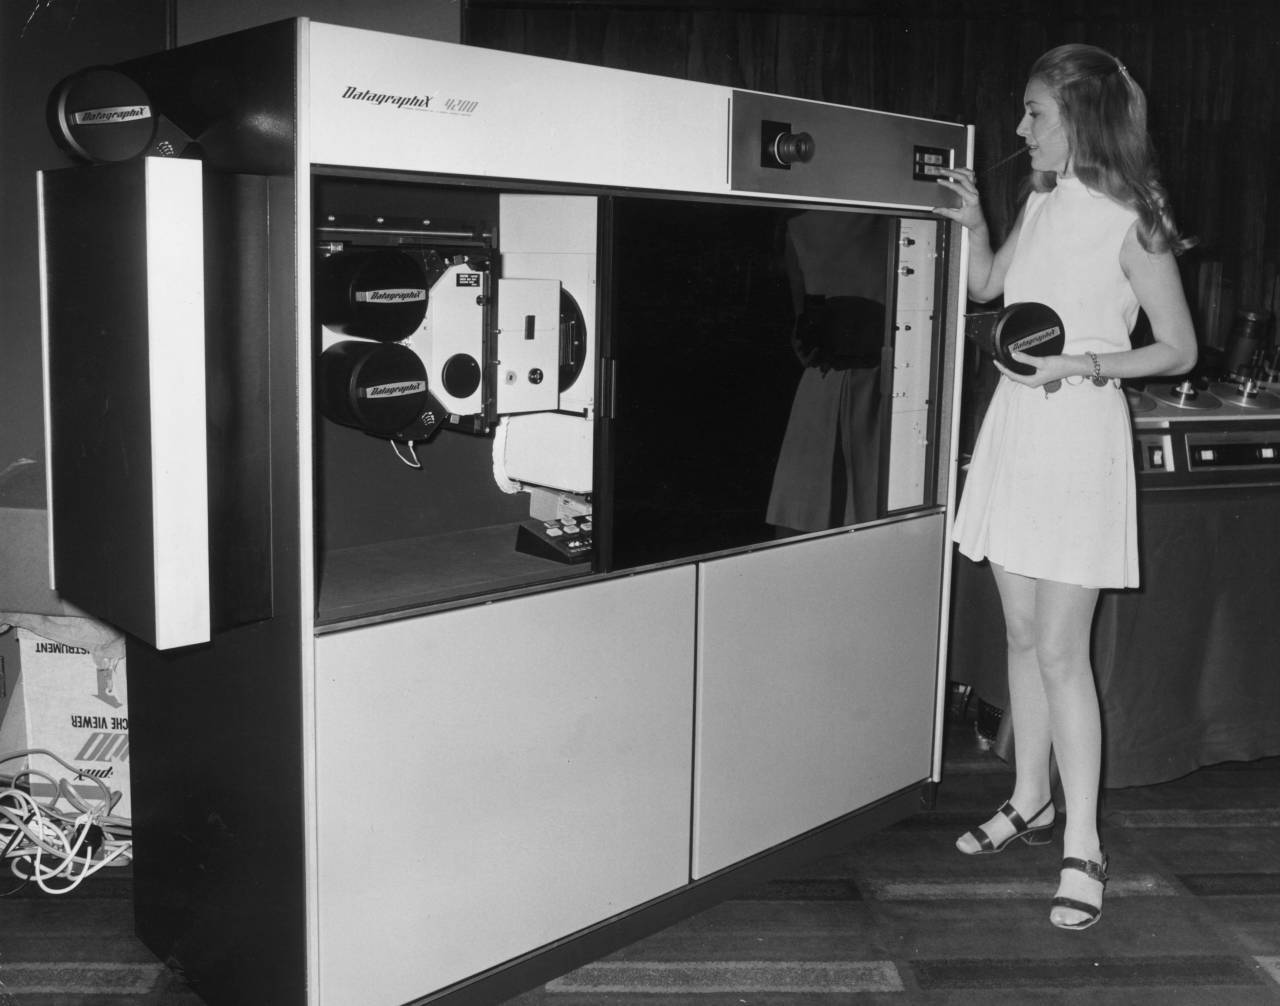 7th September 1971:  British model Jackie Perrin demonstrates the Datagraphix 4200 micromation on-line microfilmer at the Mount Royal Hotel in London. The computer costs ?24,000 and it precludes the use of one of the growing number of bureaux facilities.  (Photo by Mike Lawn/Fox Photos/Getty Images)